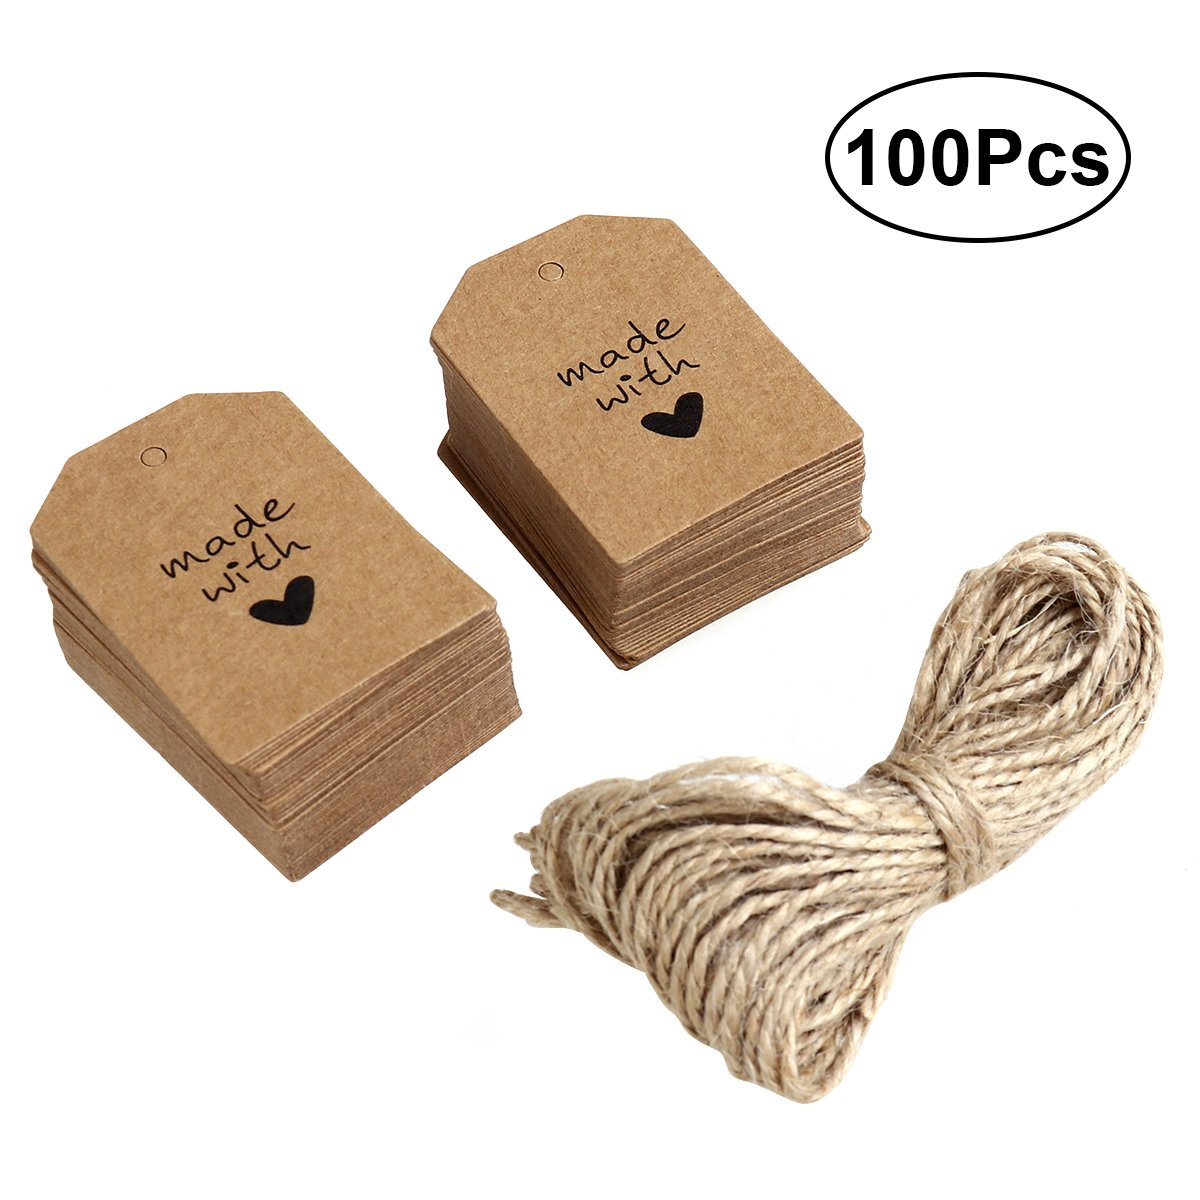 UEETEK 100pcs Made with Love Sign Paper Tag Gift Label with Twine for Wedding Party